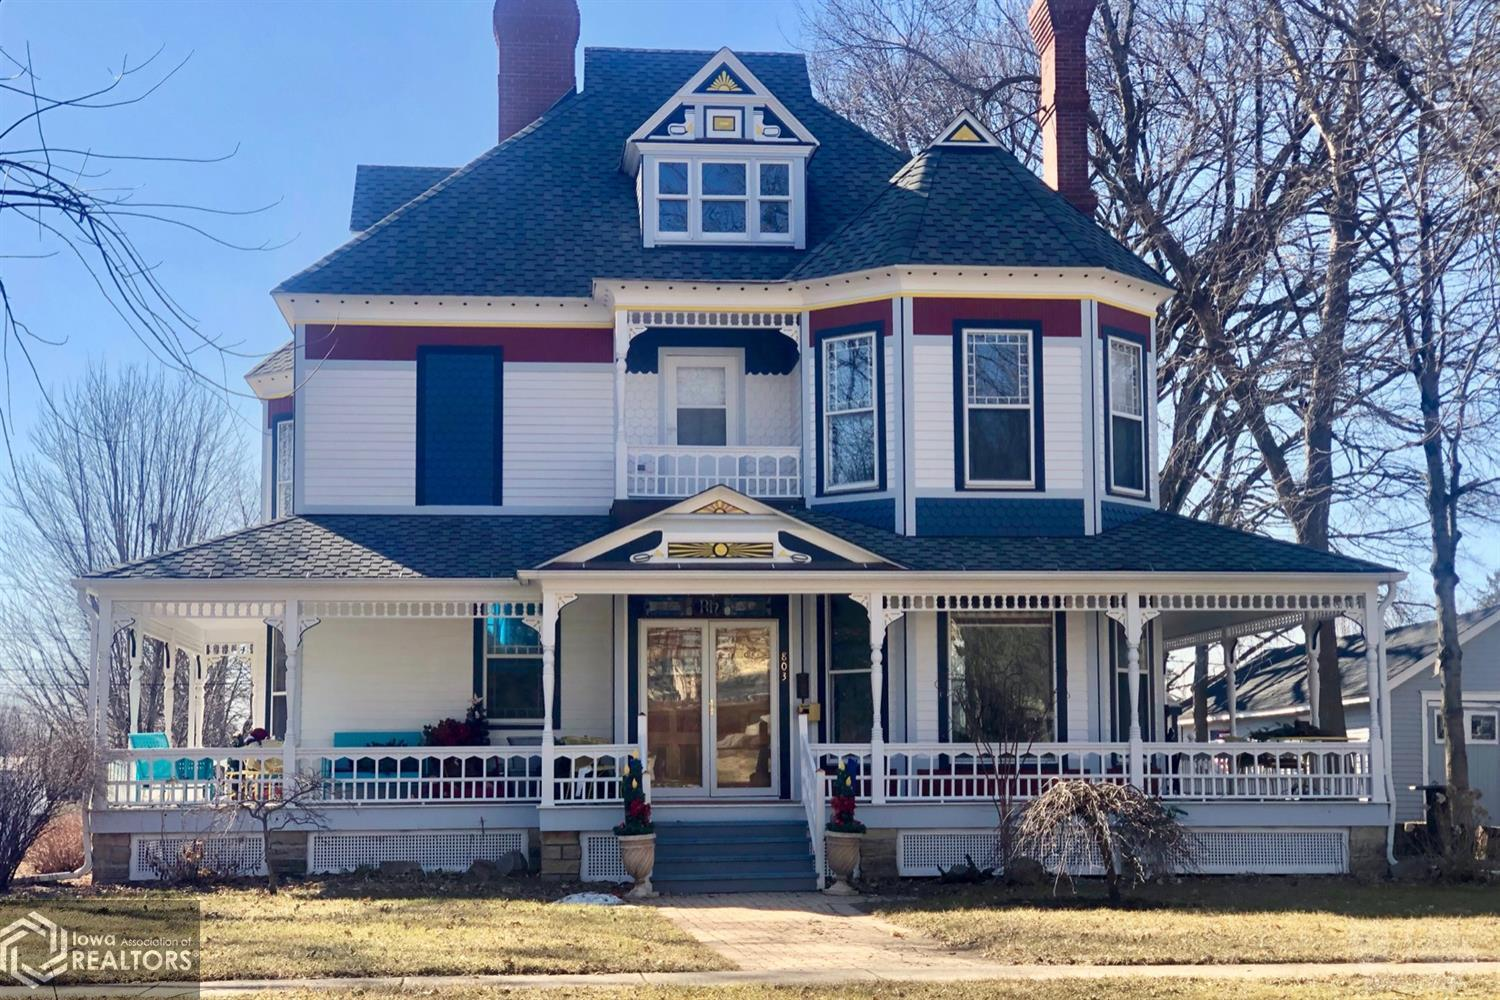 803 High, Grinnell, Iowa 50112, 3 Bedrooms Bedrooms, ,2 BathroomsBathrooms,Single Family,For Sale,High,5728847